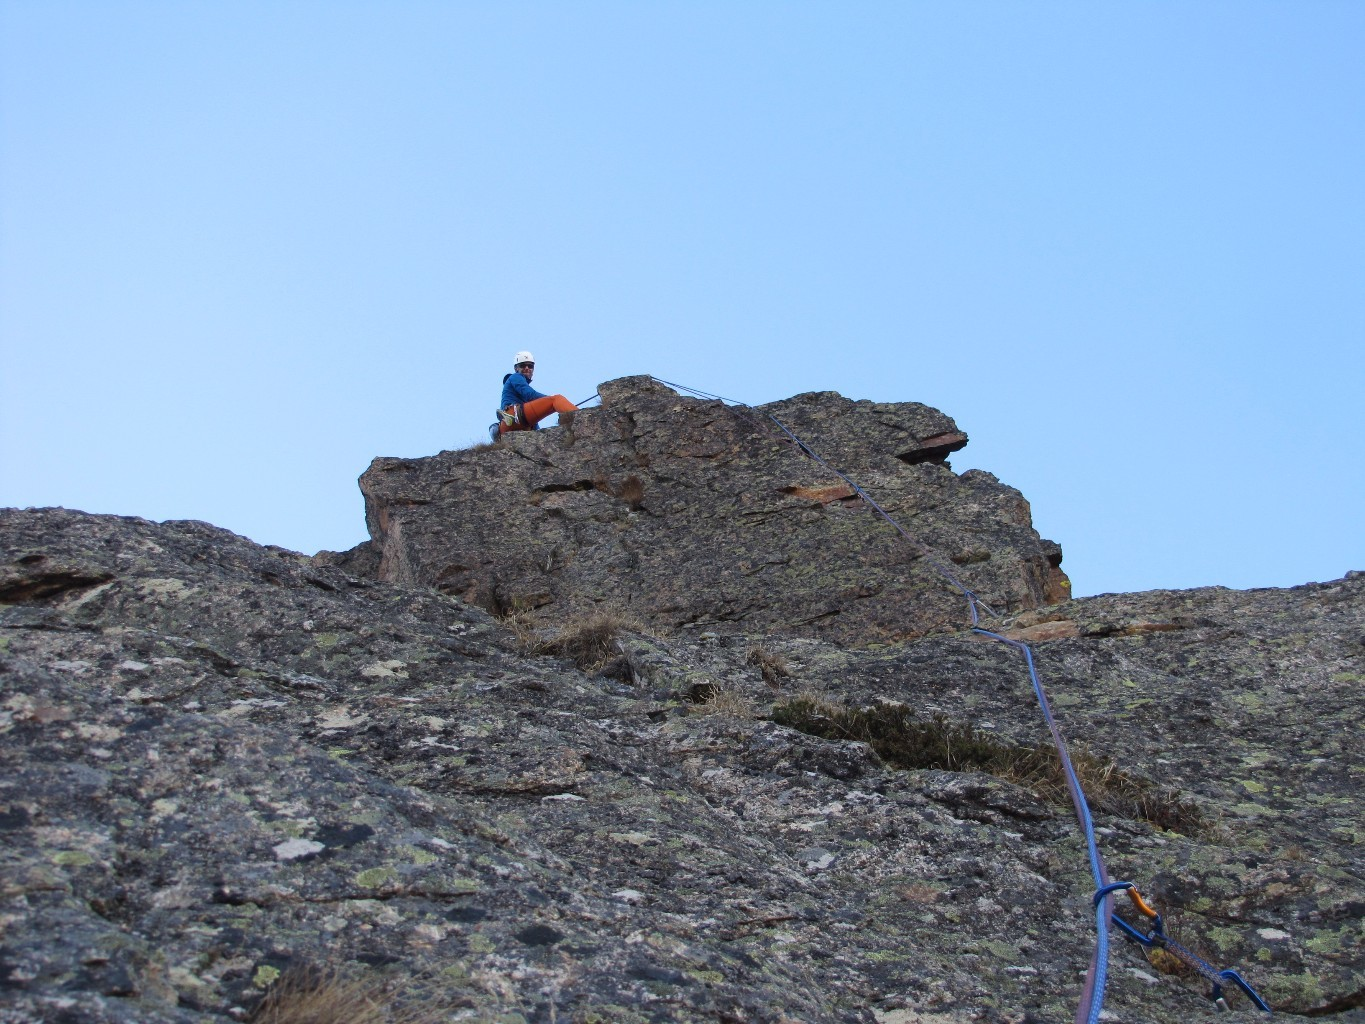 Stance at end of Pitch 8